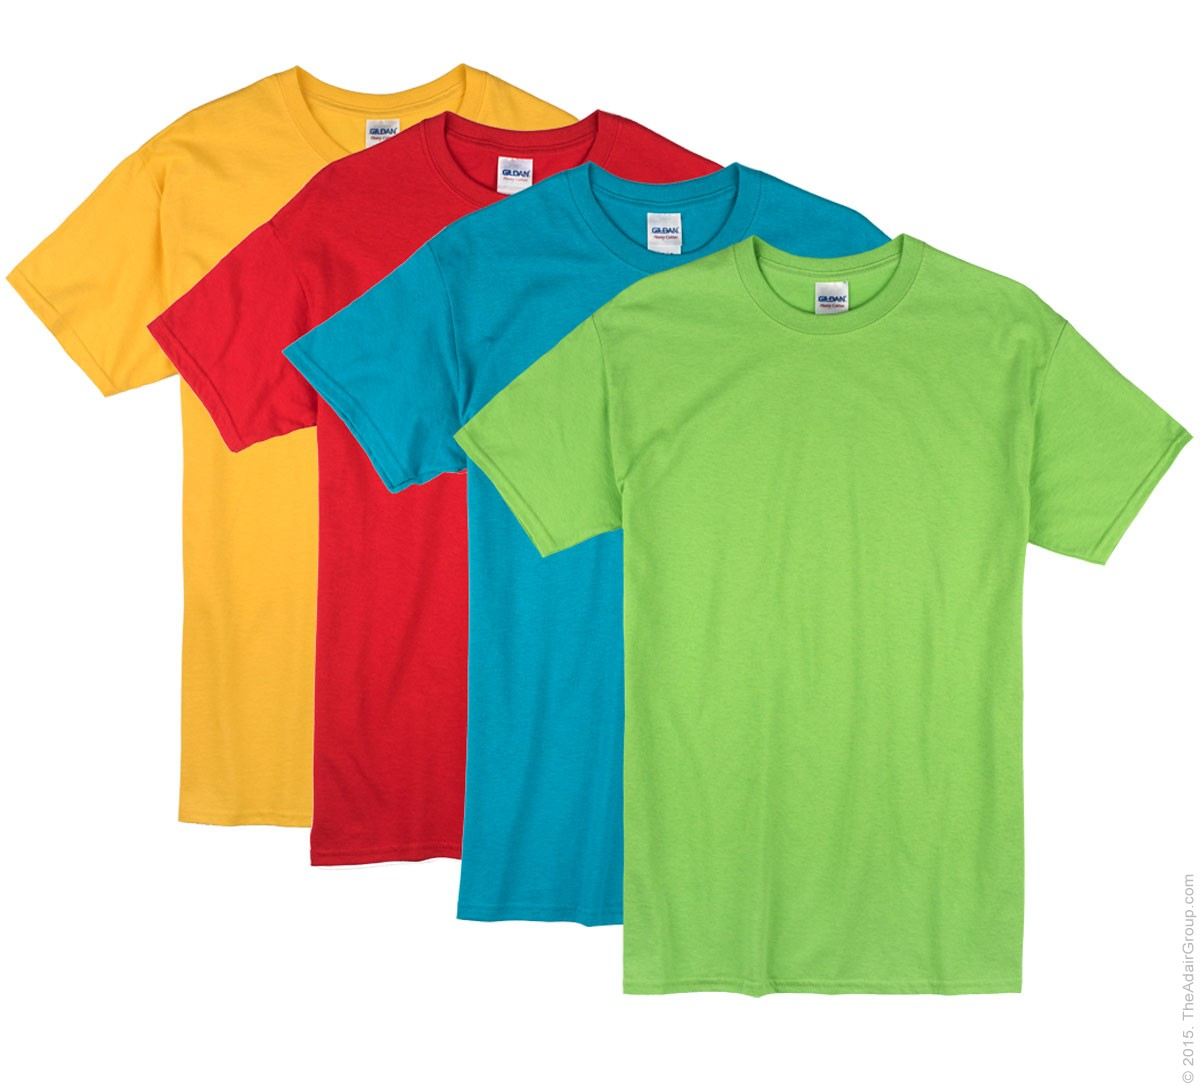 1 Wholesale Colored T Shirts from Adair Group